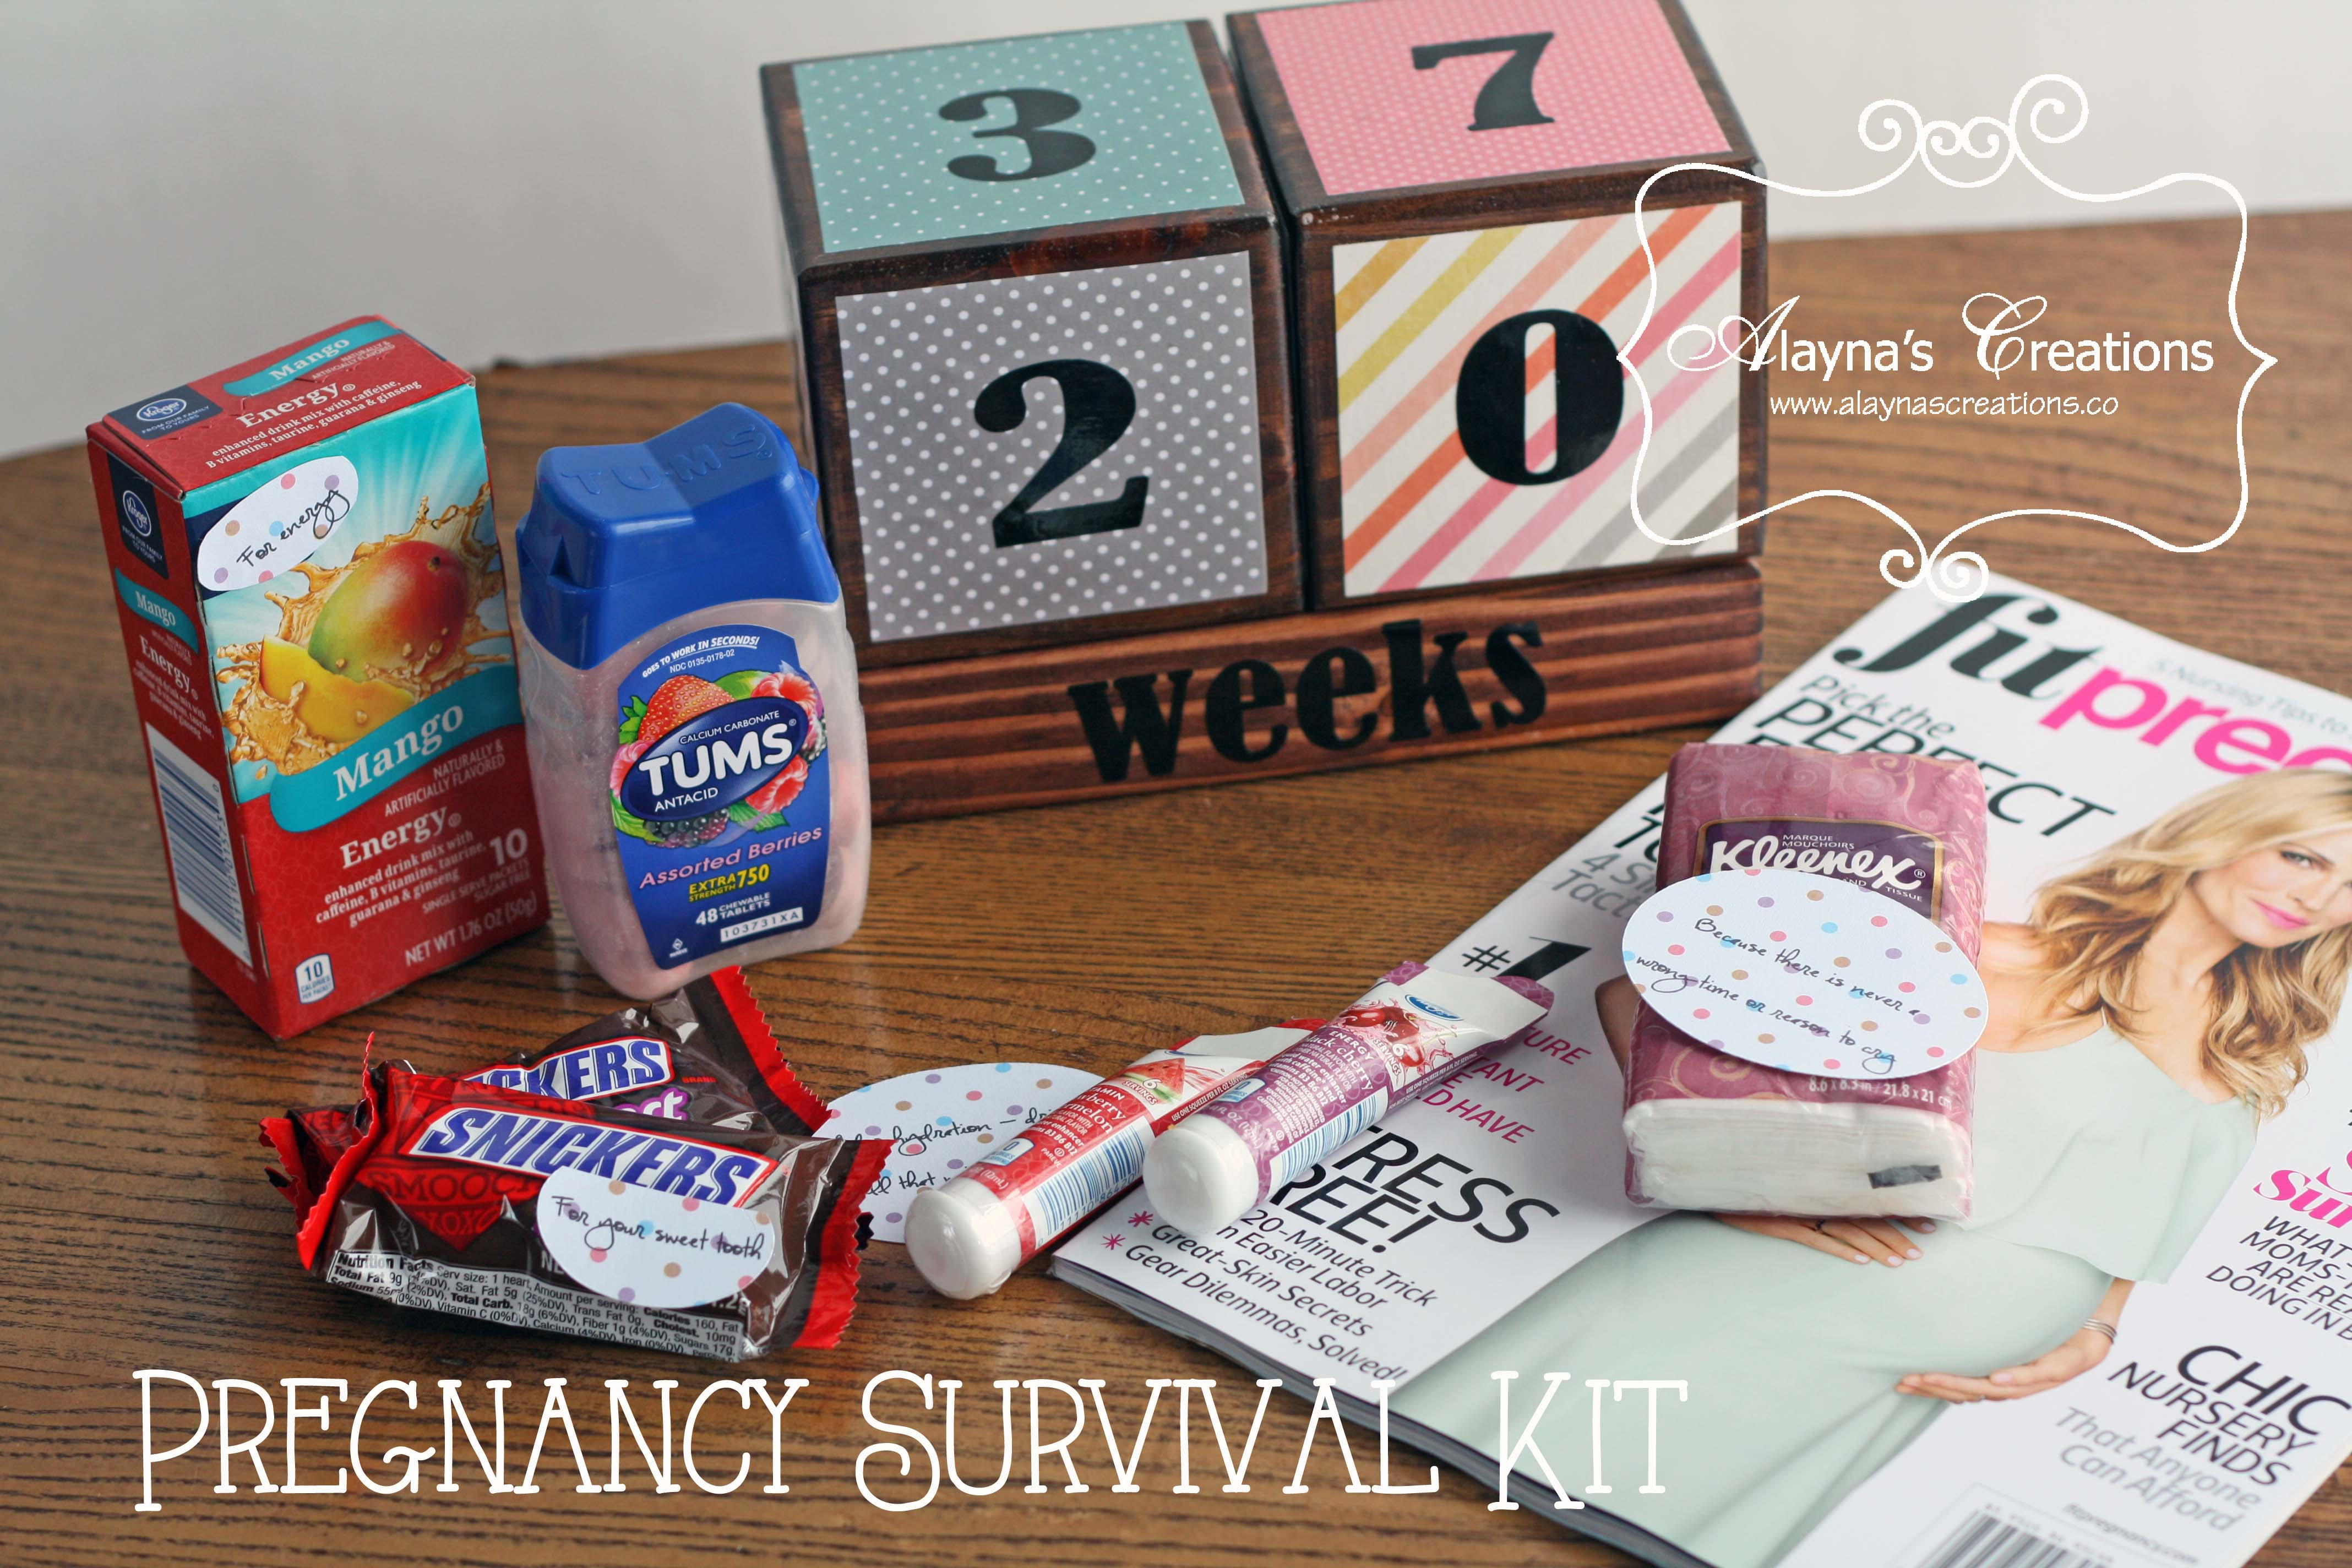 Gift basket archives diy home decor and crafts pregnancy survival kit gift basket idea a great way to show your excitement for a friend solutioingenieria Image collections